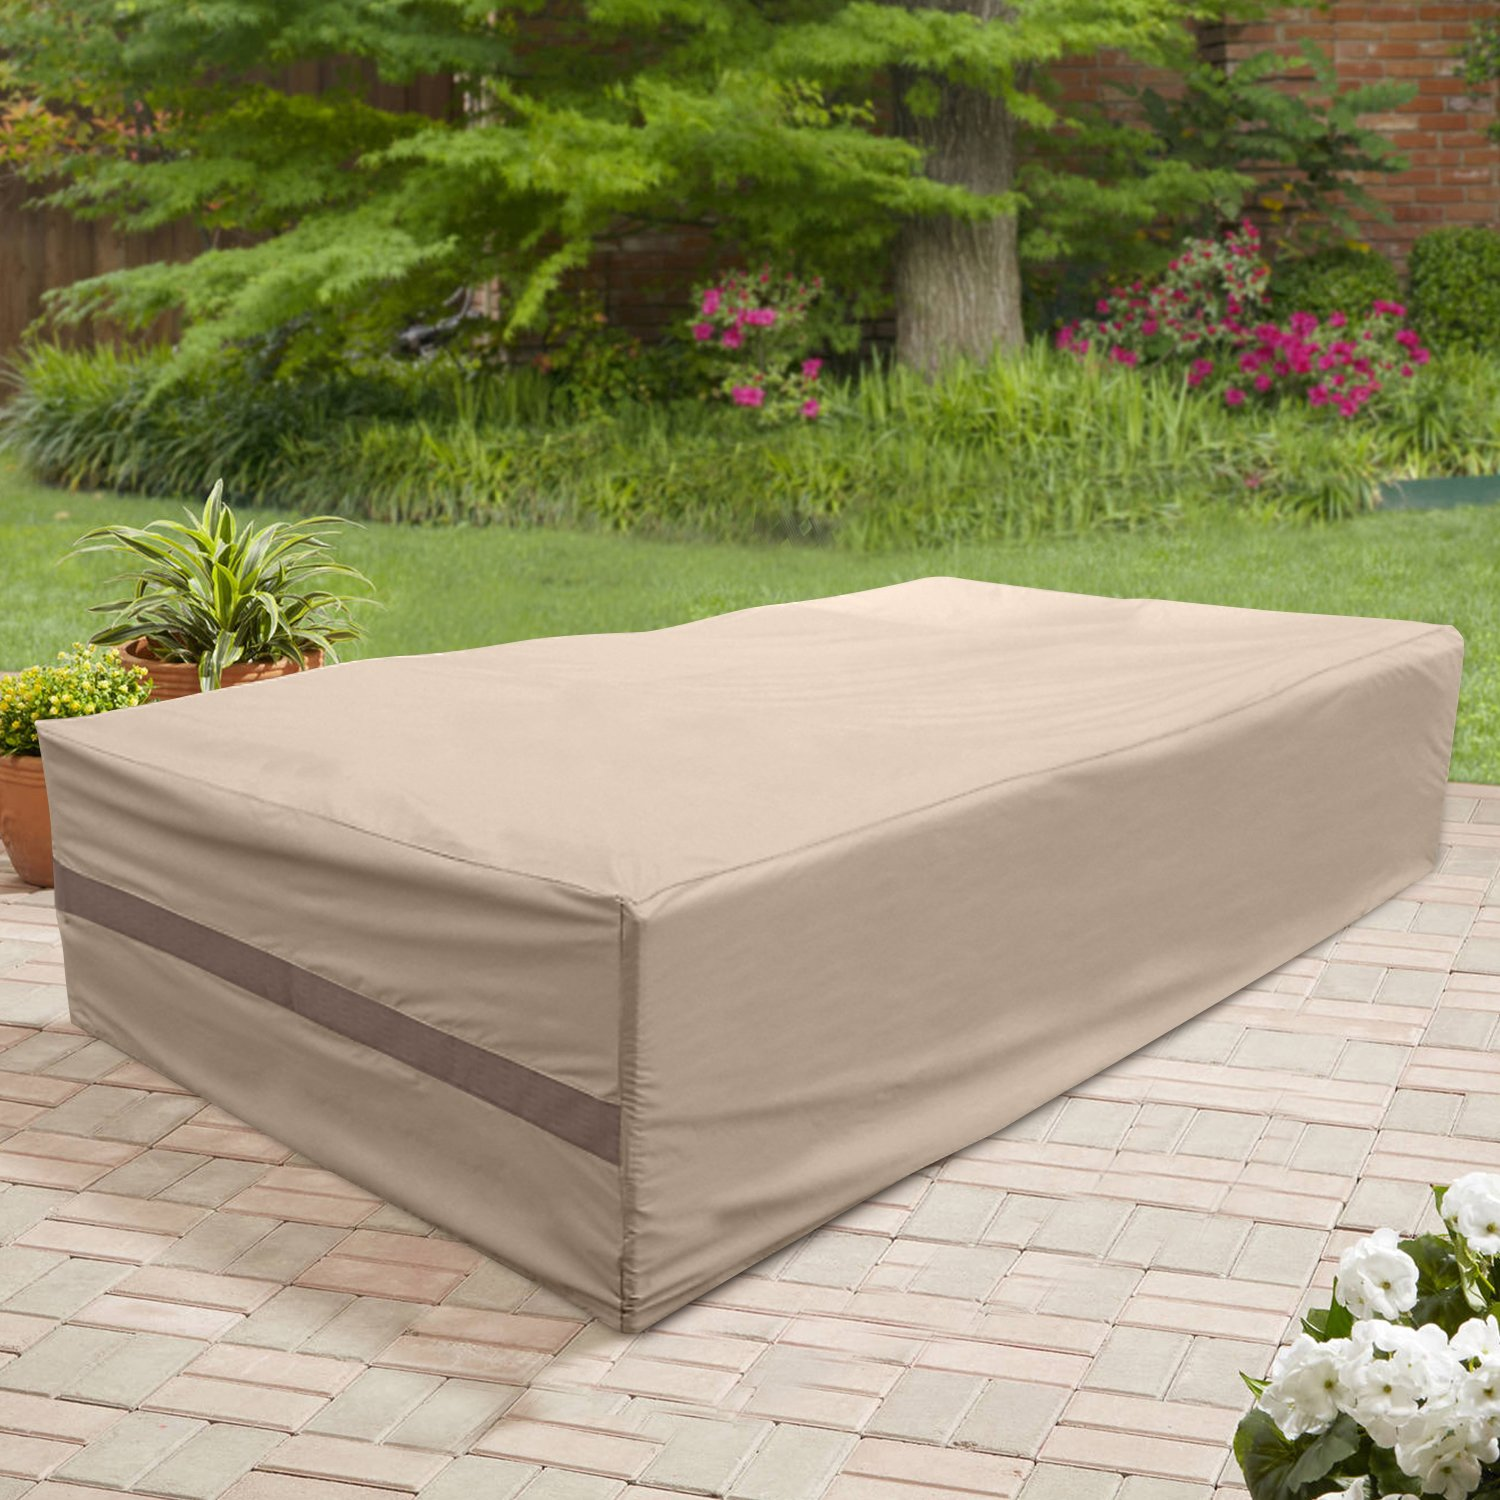 Classic Accessories 55-781-041501-00 Veranda Outdoor Patio Cover, Large, Pebble